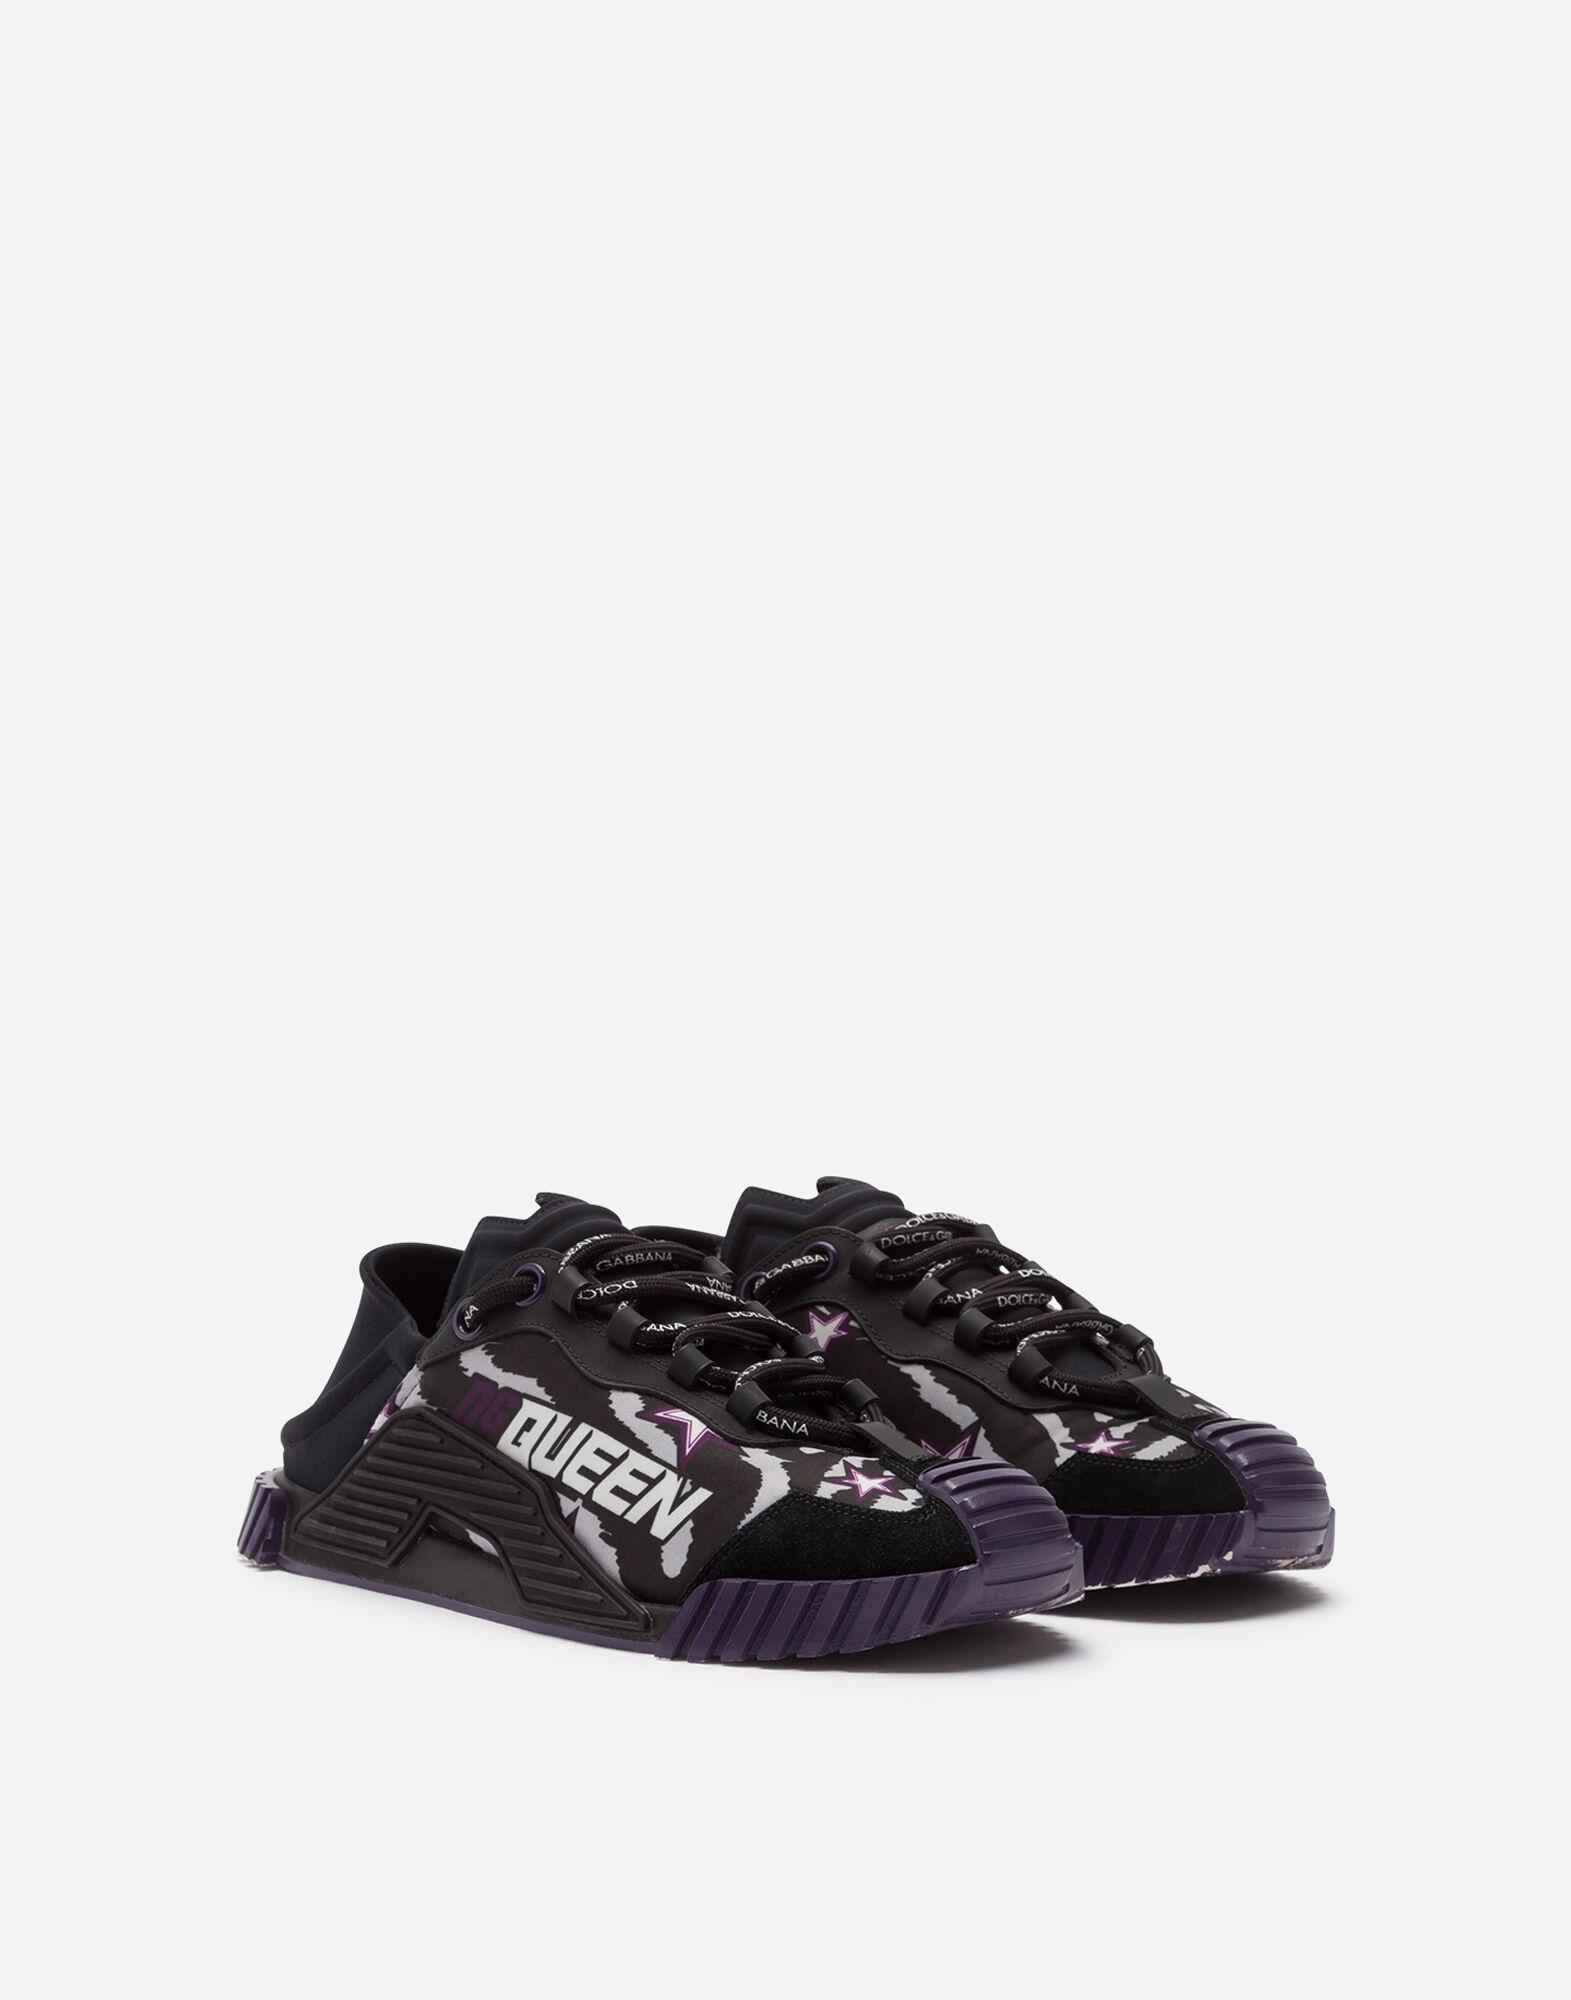 Slip-on NS1 sneakers in mixed materials with jungle print and purple bottom 1